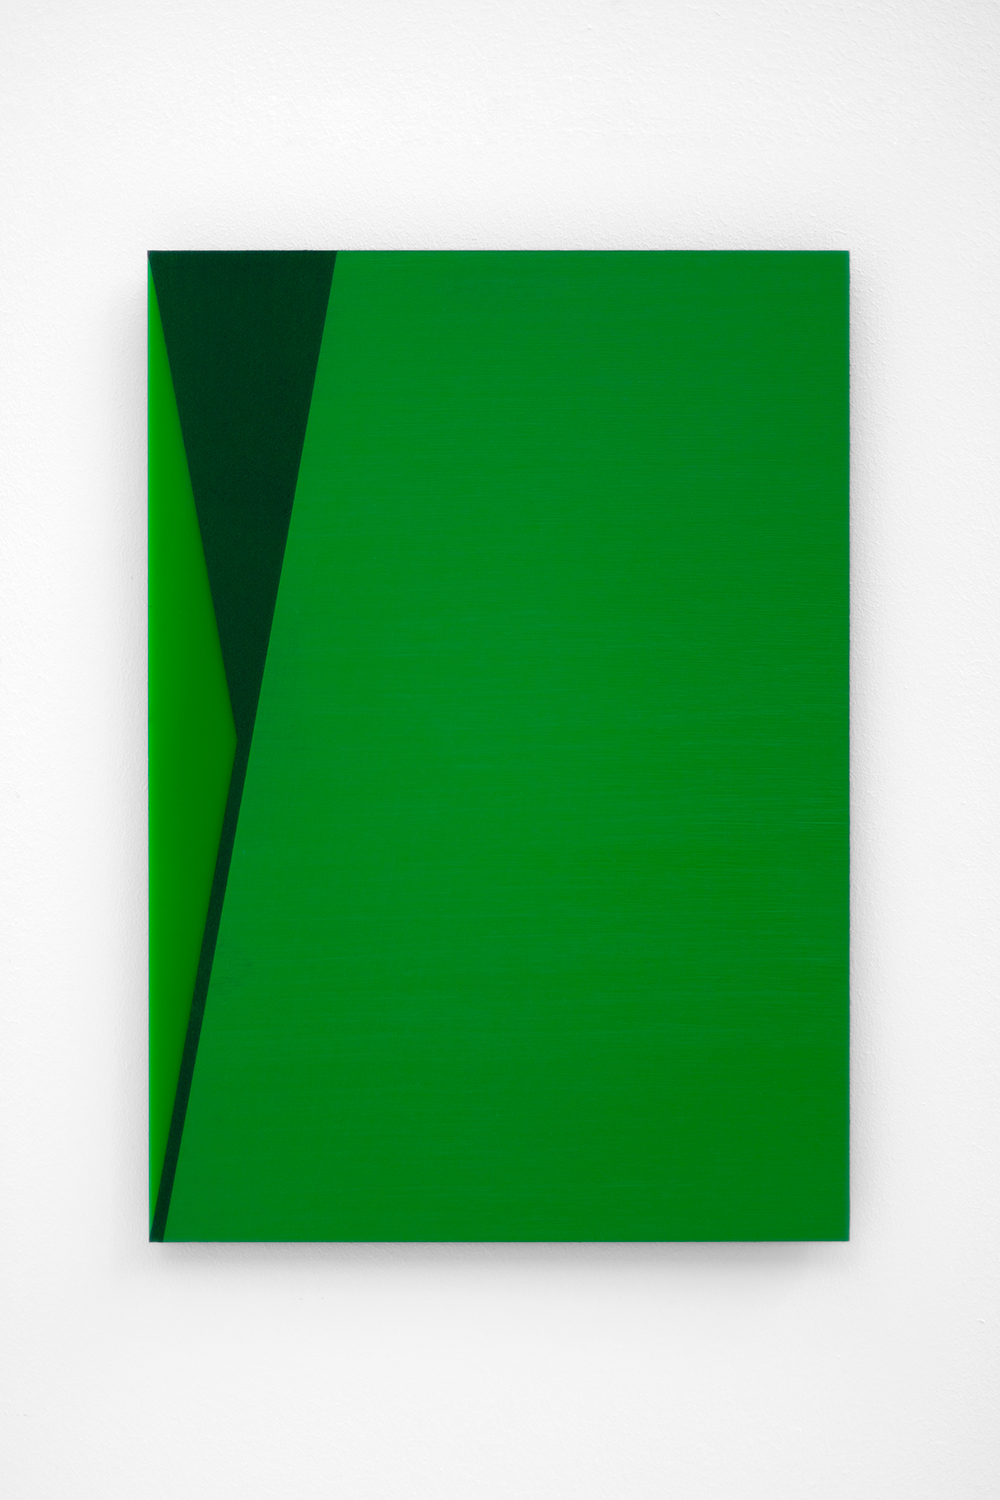 The Green Series nr. 9 42 x 29,7 cm ( A3 Size ) Oil and arylic on green perspex